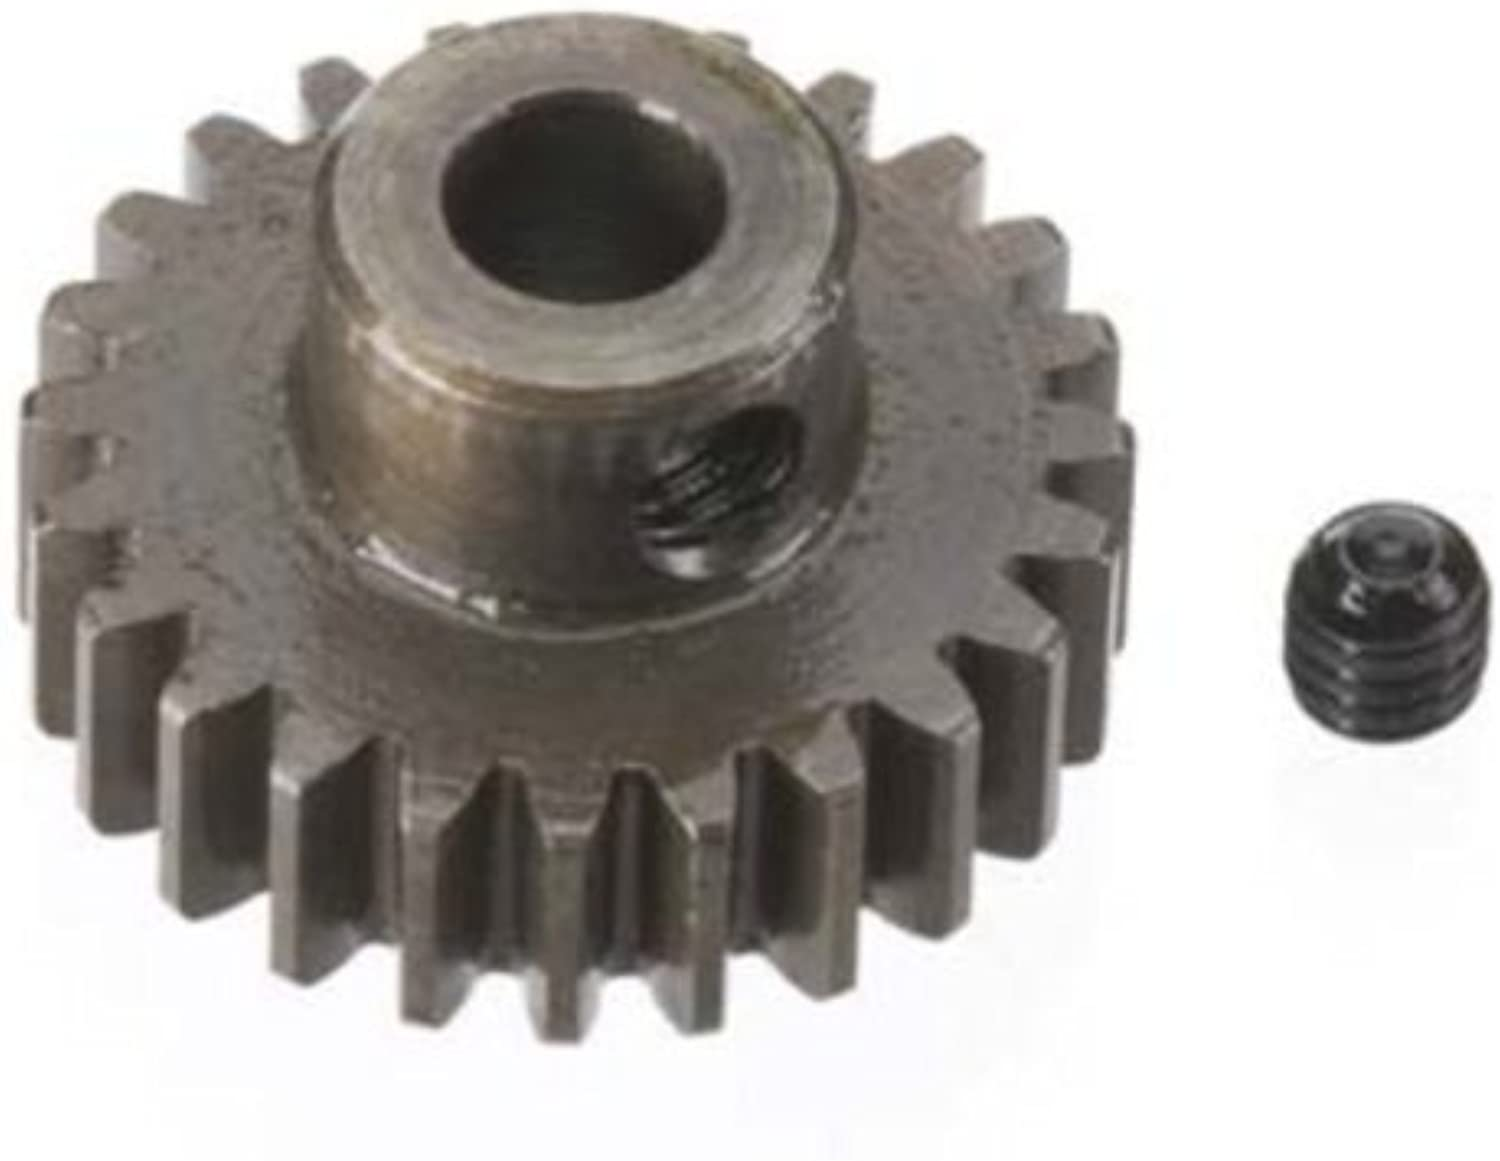 Robinson Racing Products 8724 Hard Bore 0.8 Module Pinion Gear 24T, 5mm by HRP (Level 3 Products)